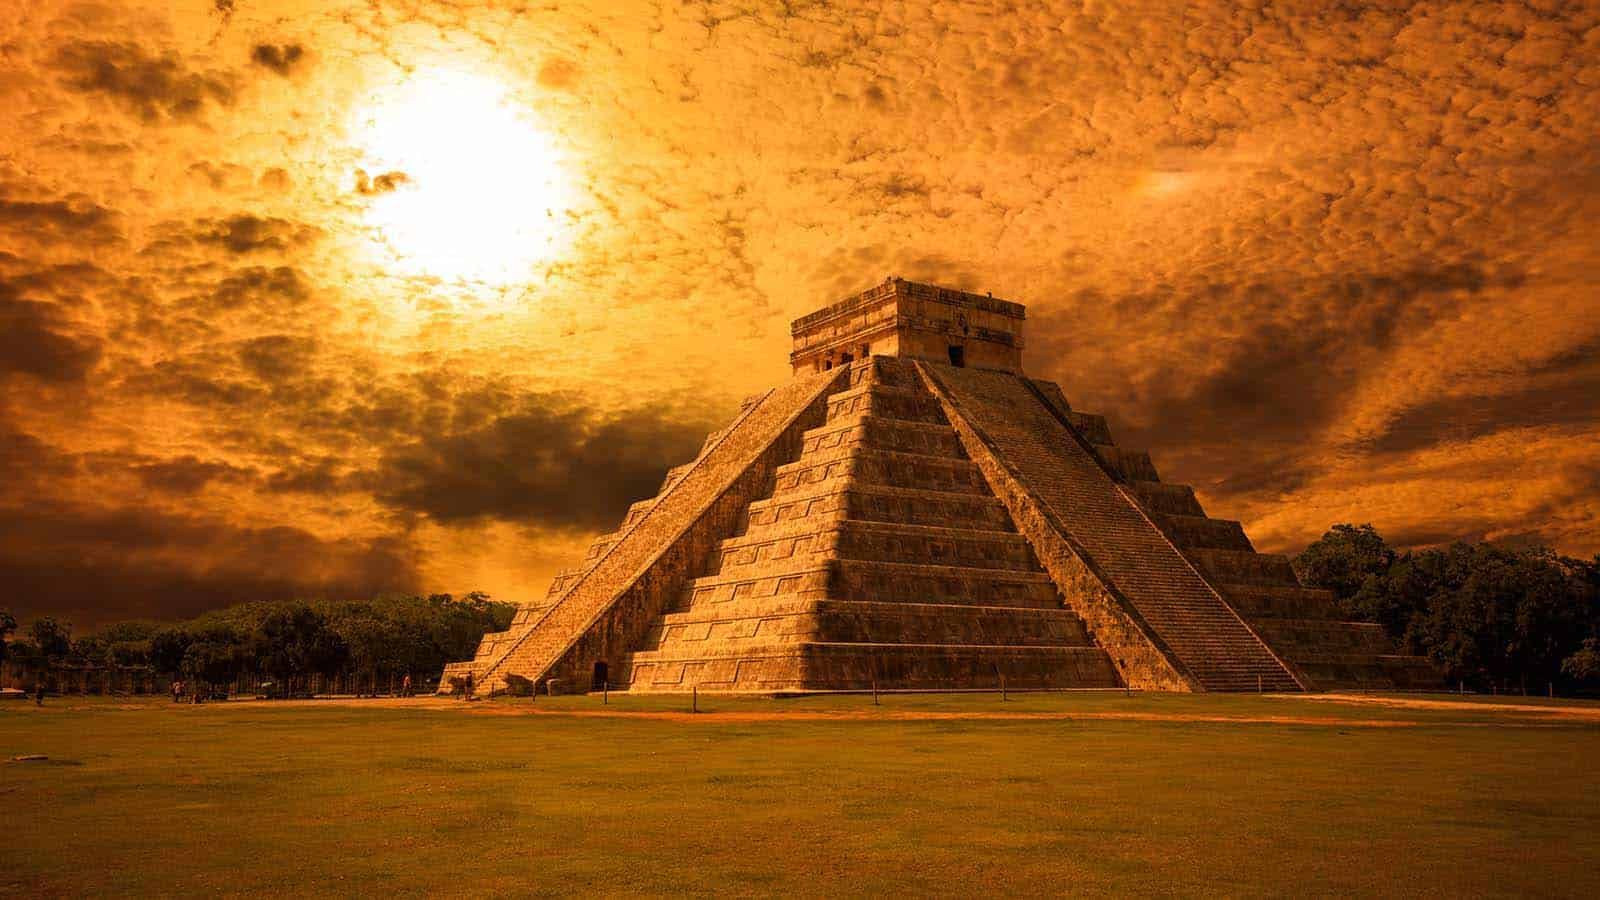 Mexico, Yucatan Peninsula - The Kukulkan Pyramid in Chichen Itza